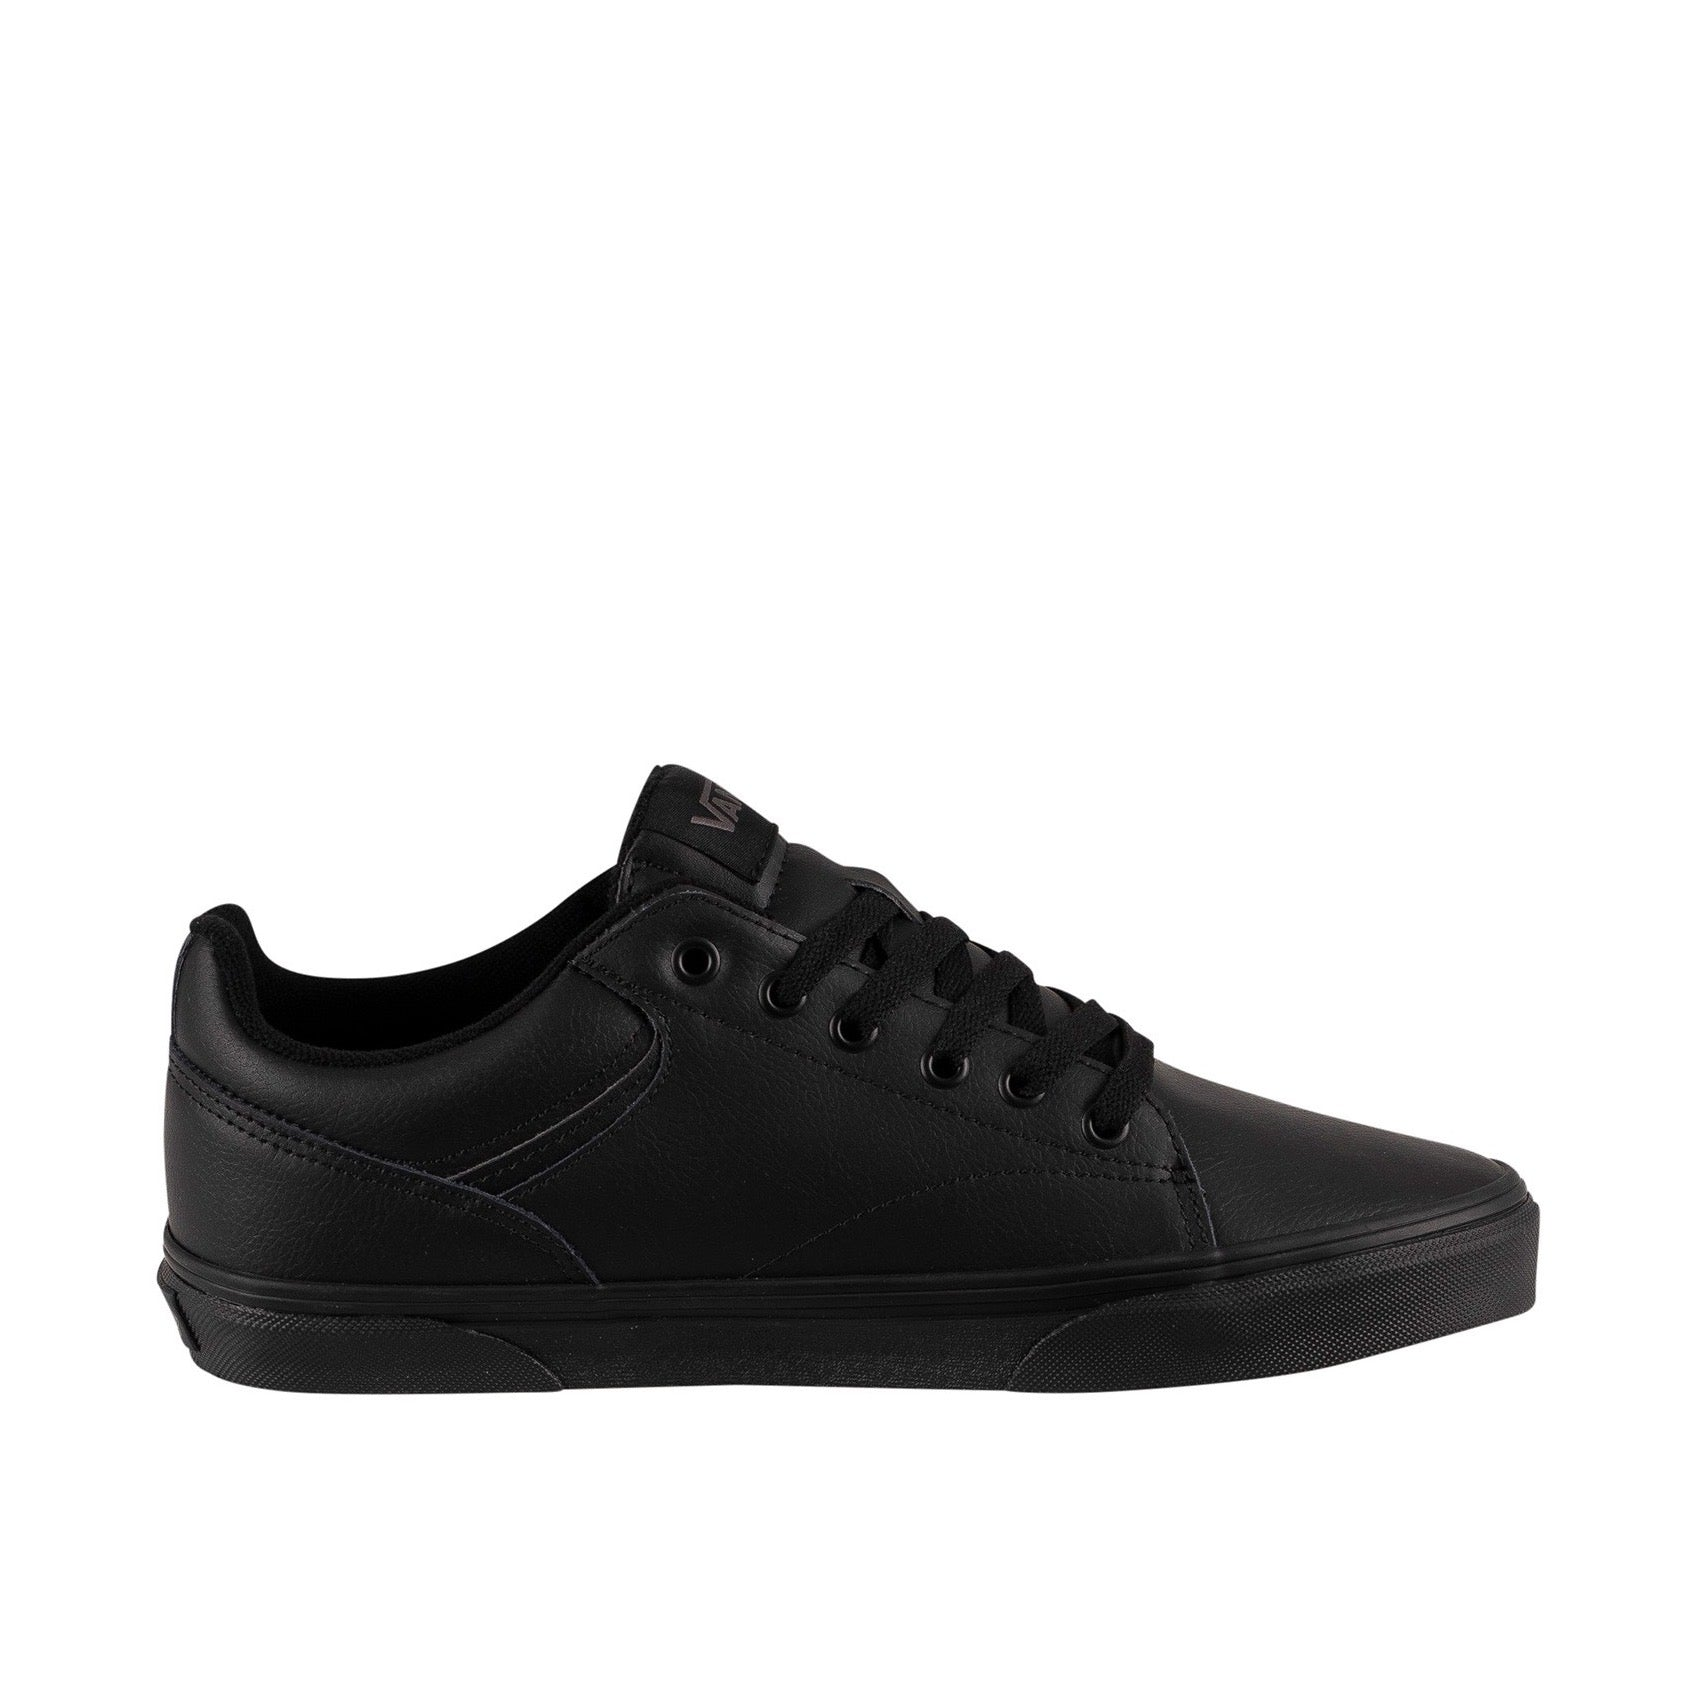 Vans Youth Seldan Tumble Black